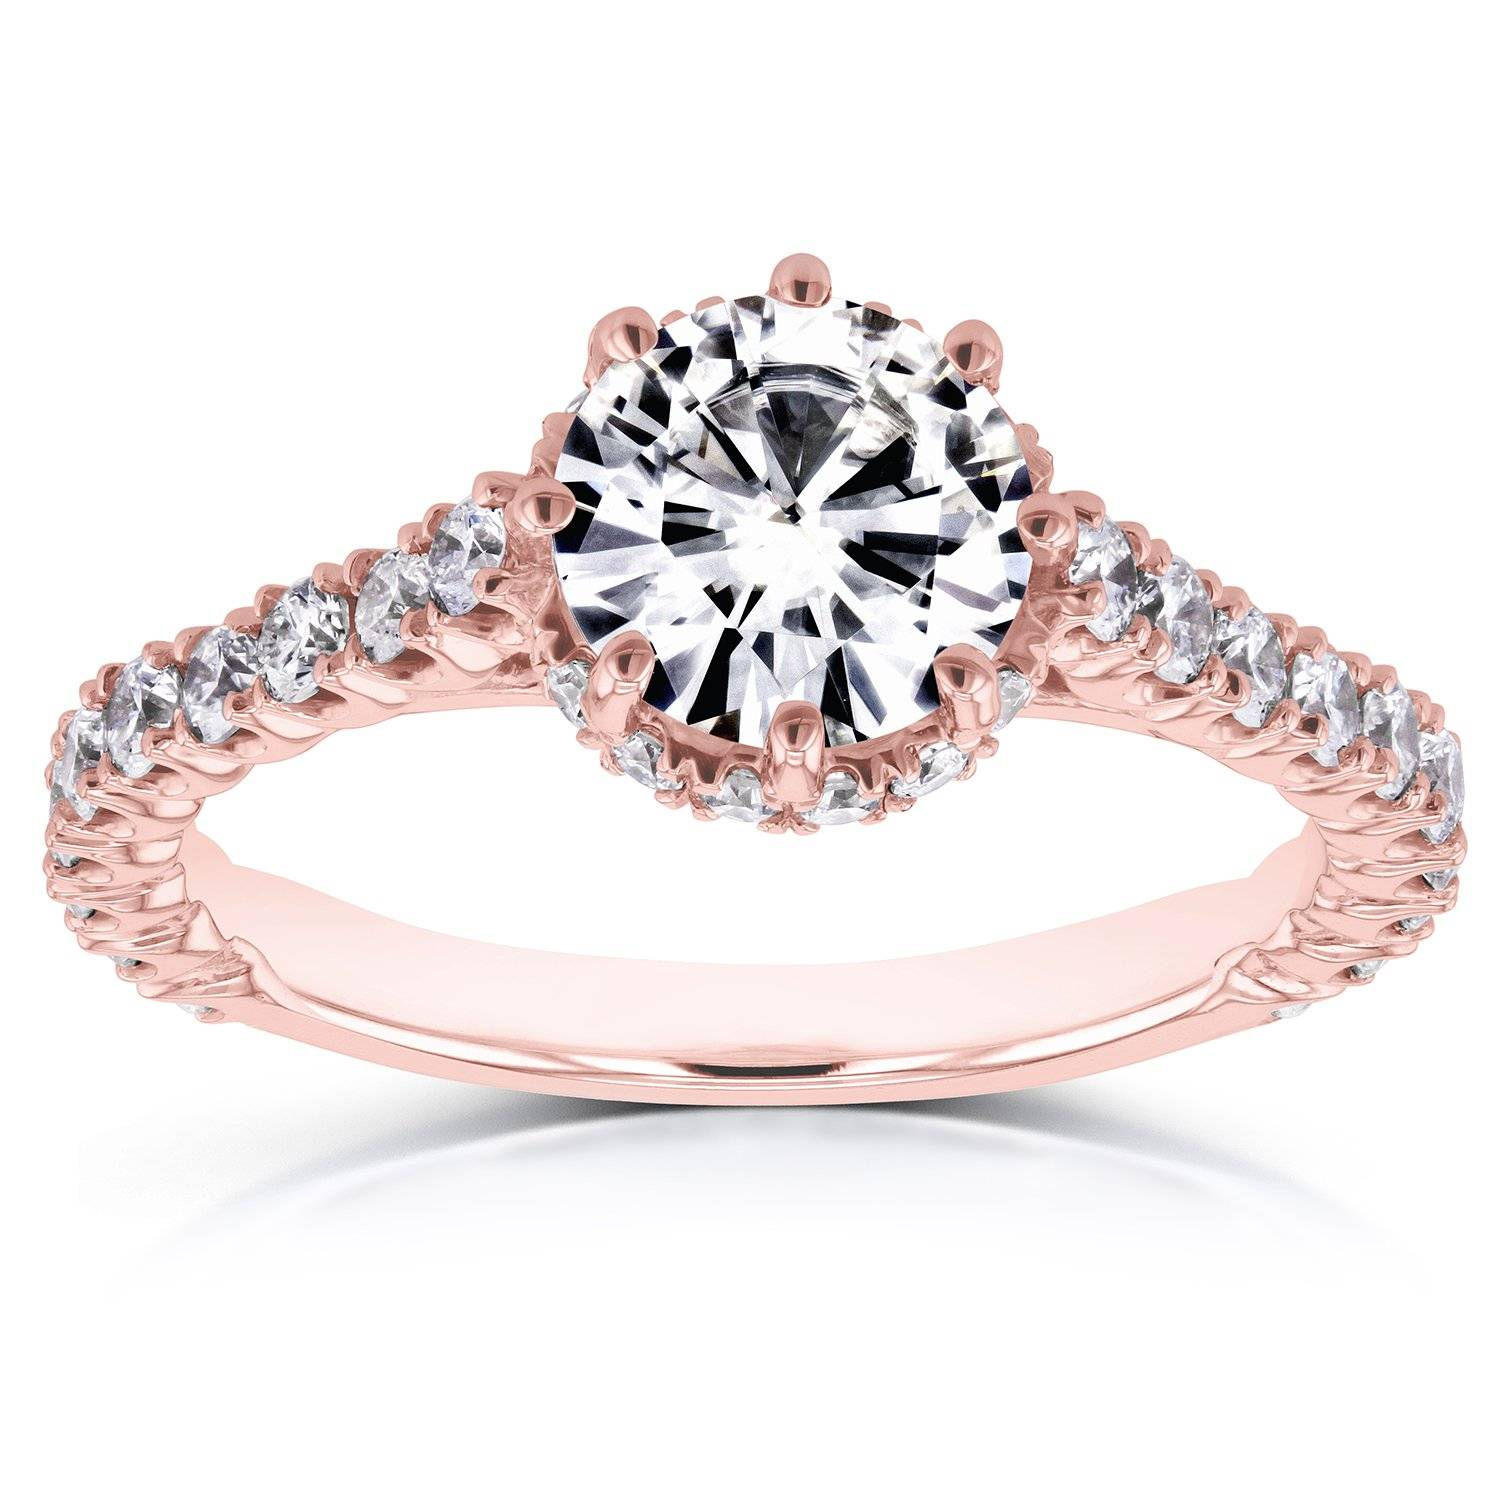 8 prong rose gold engagement ring